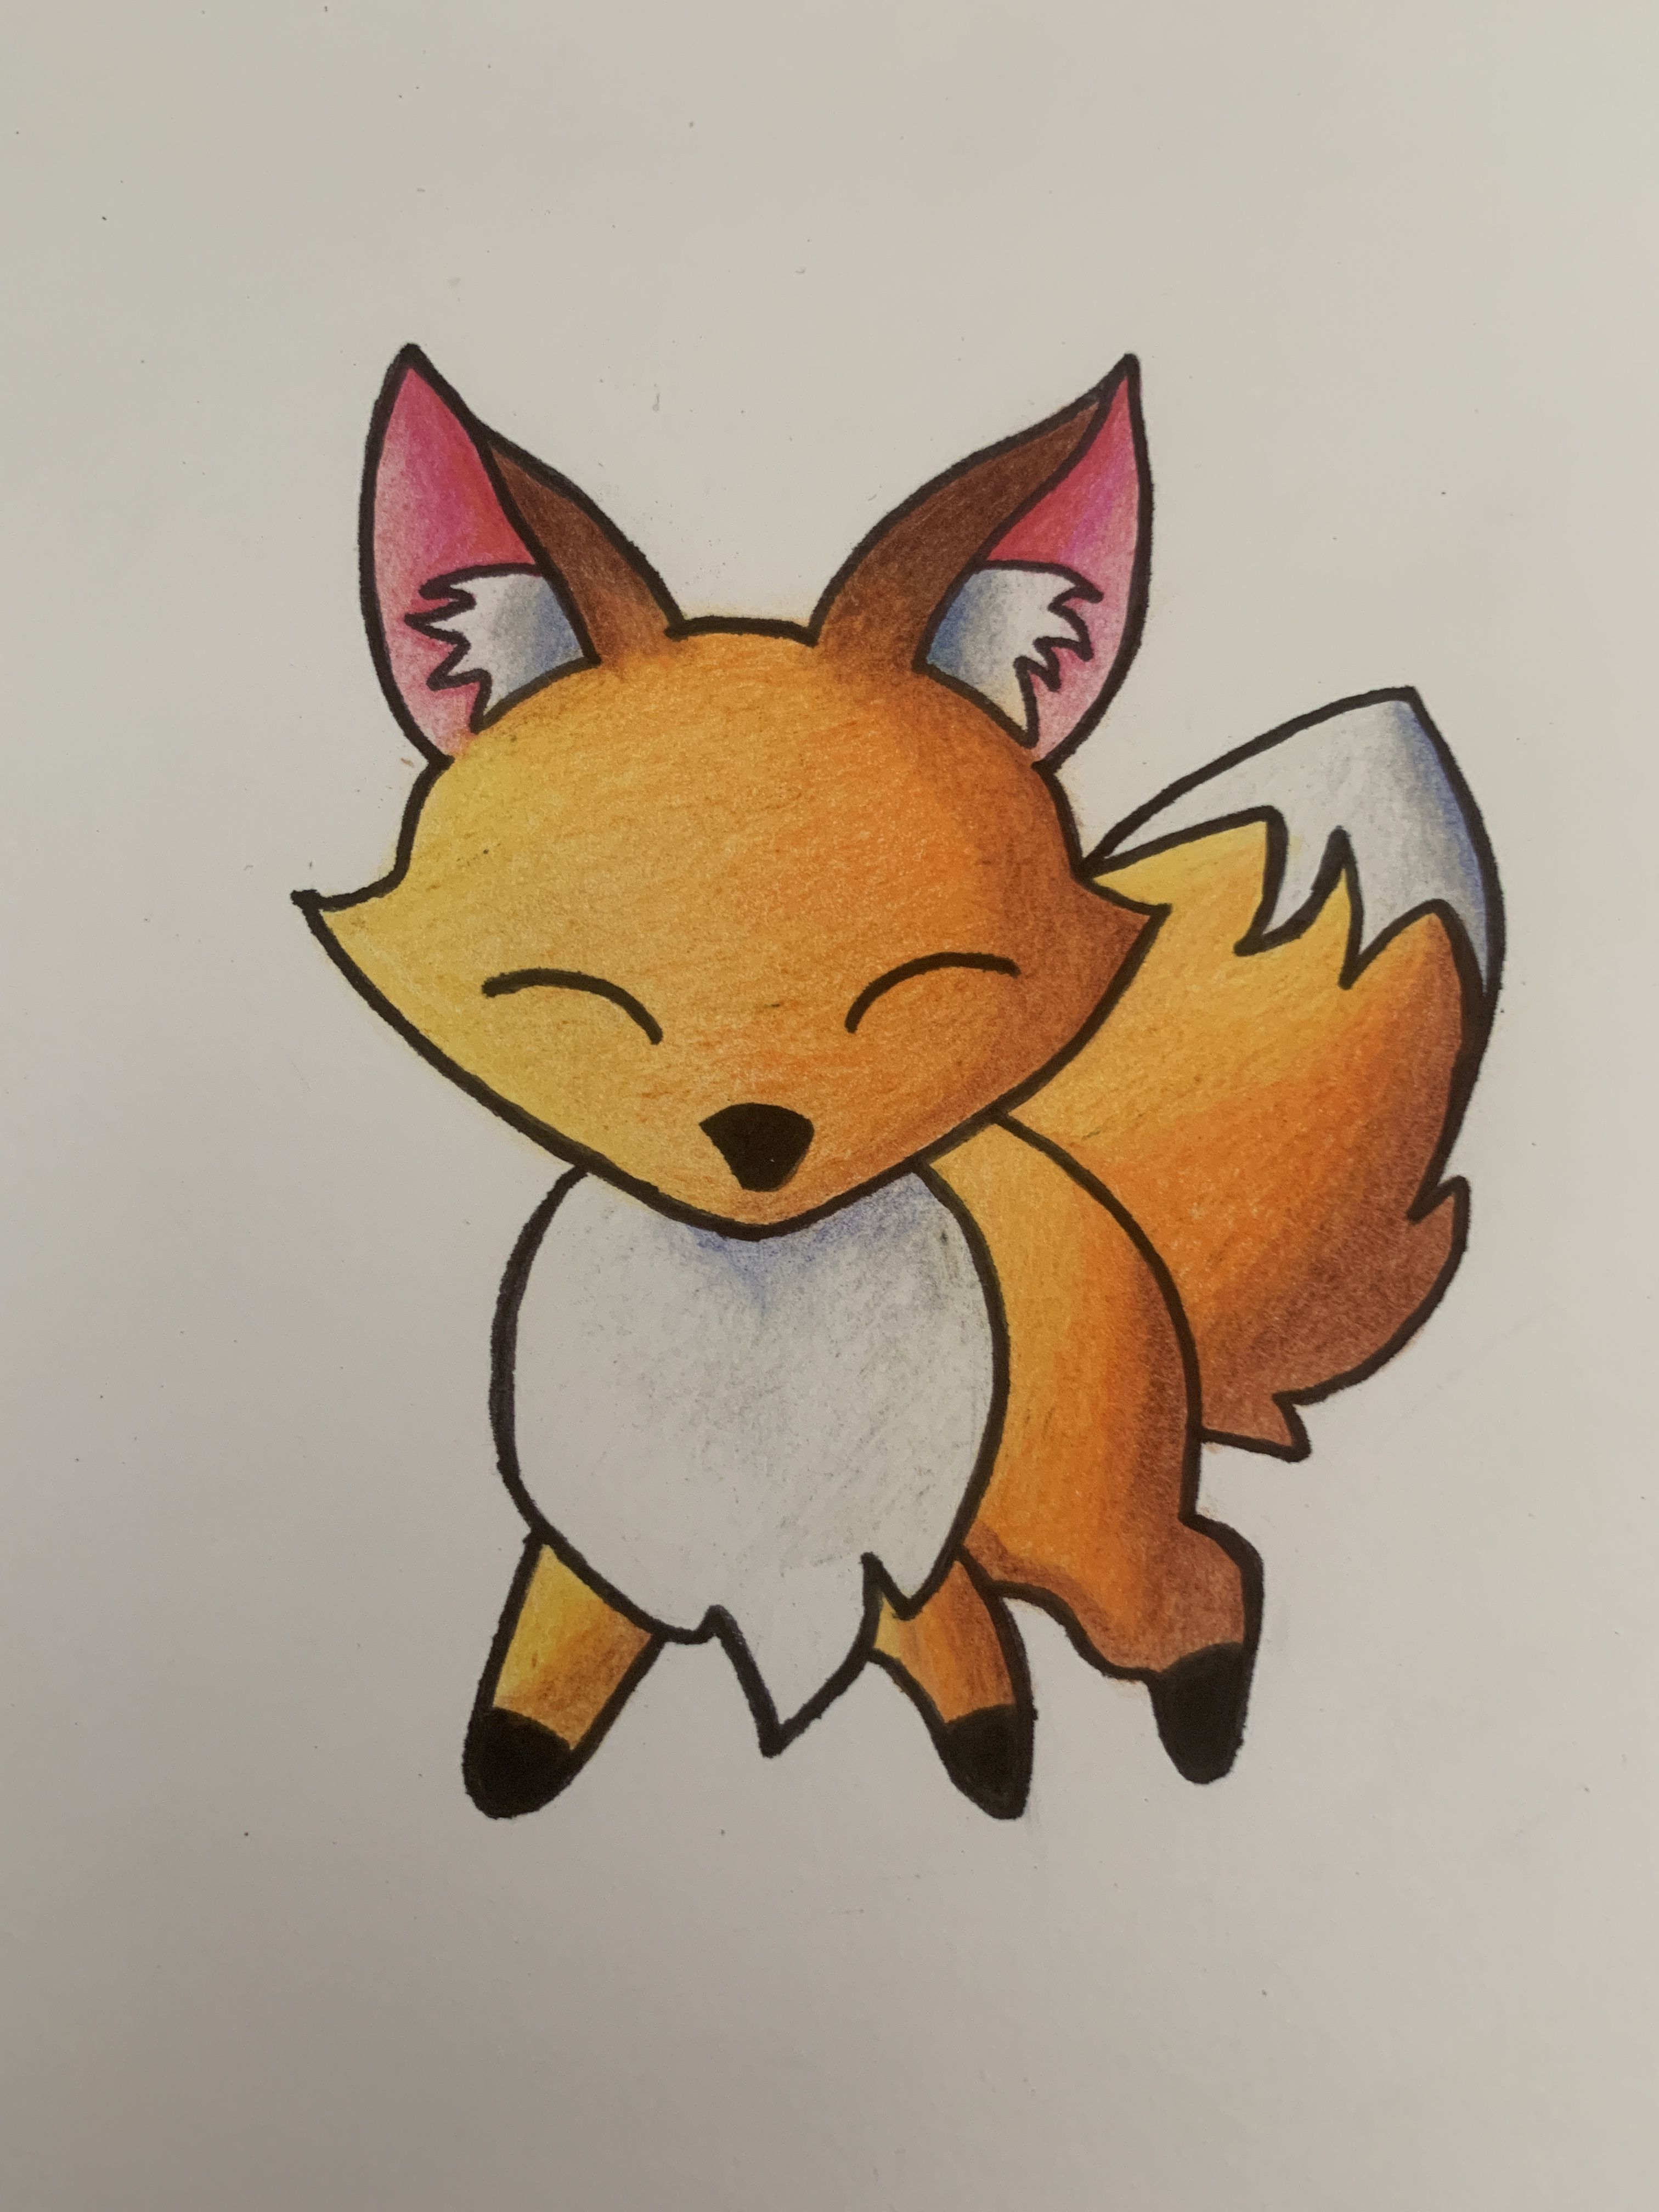 Renard Kawaii Dessin Kawaii Dessins Disney Dessin